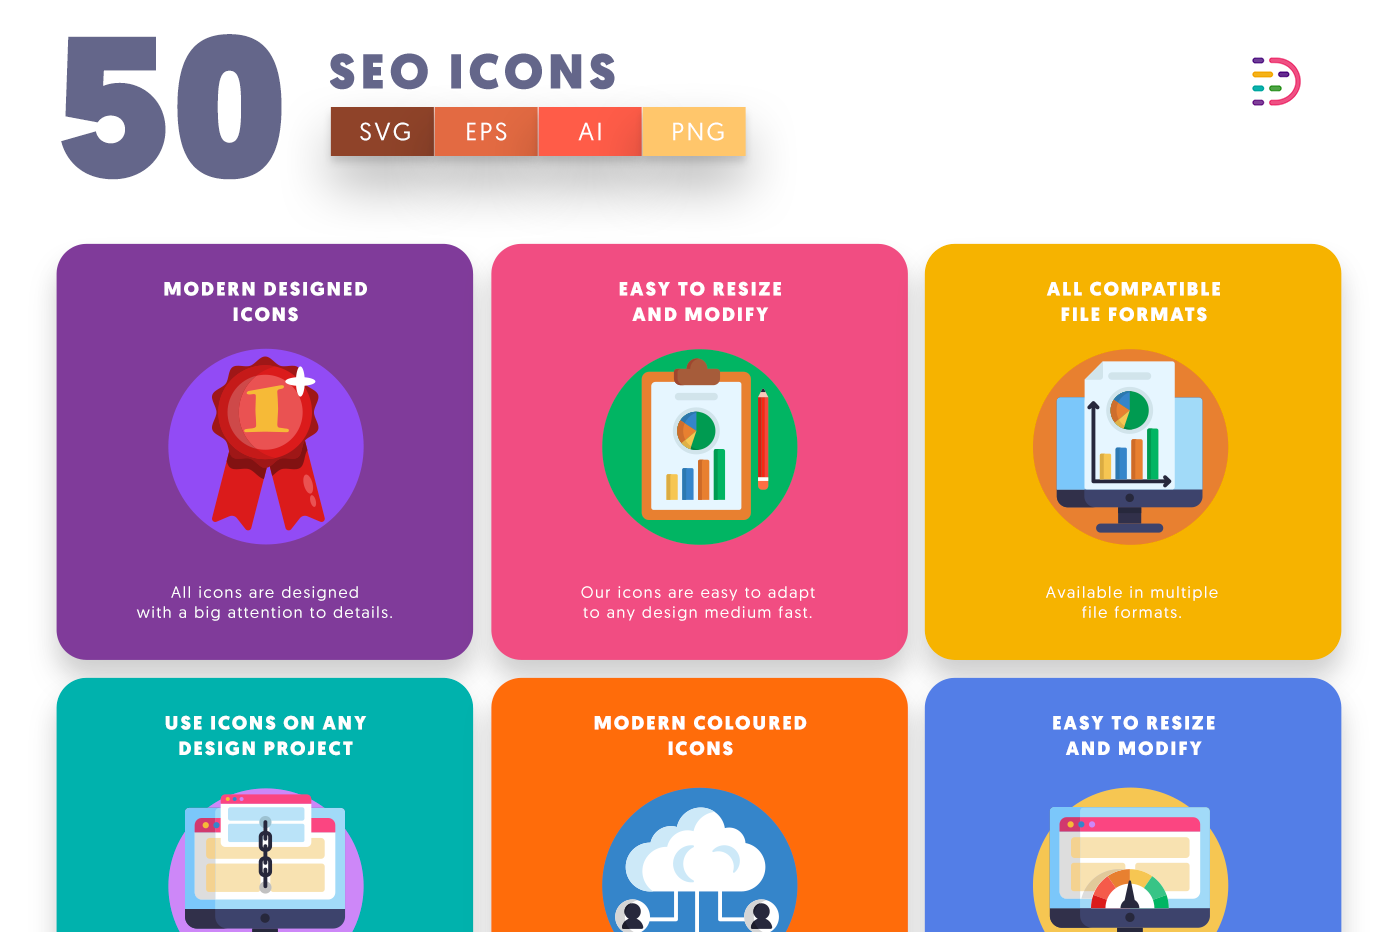 50 SEO Icons with colored backgrounds